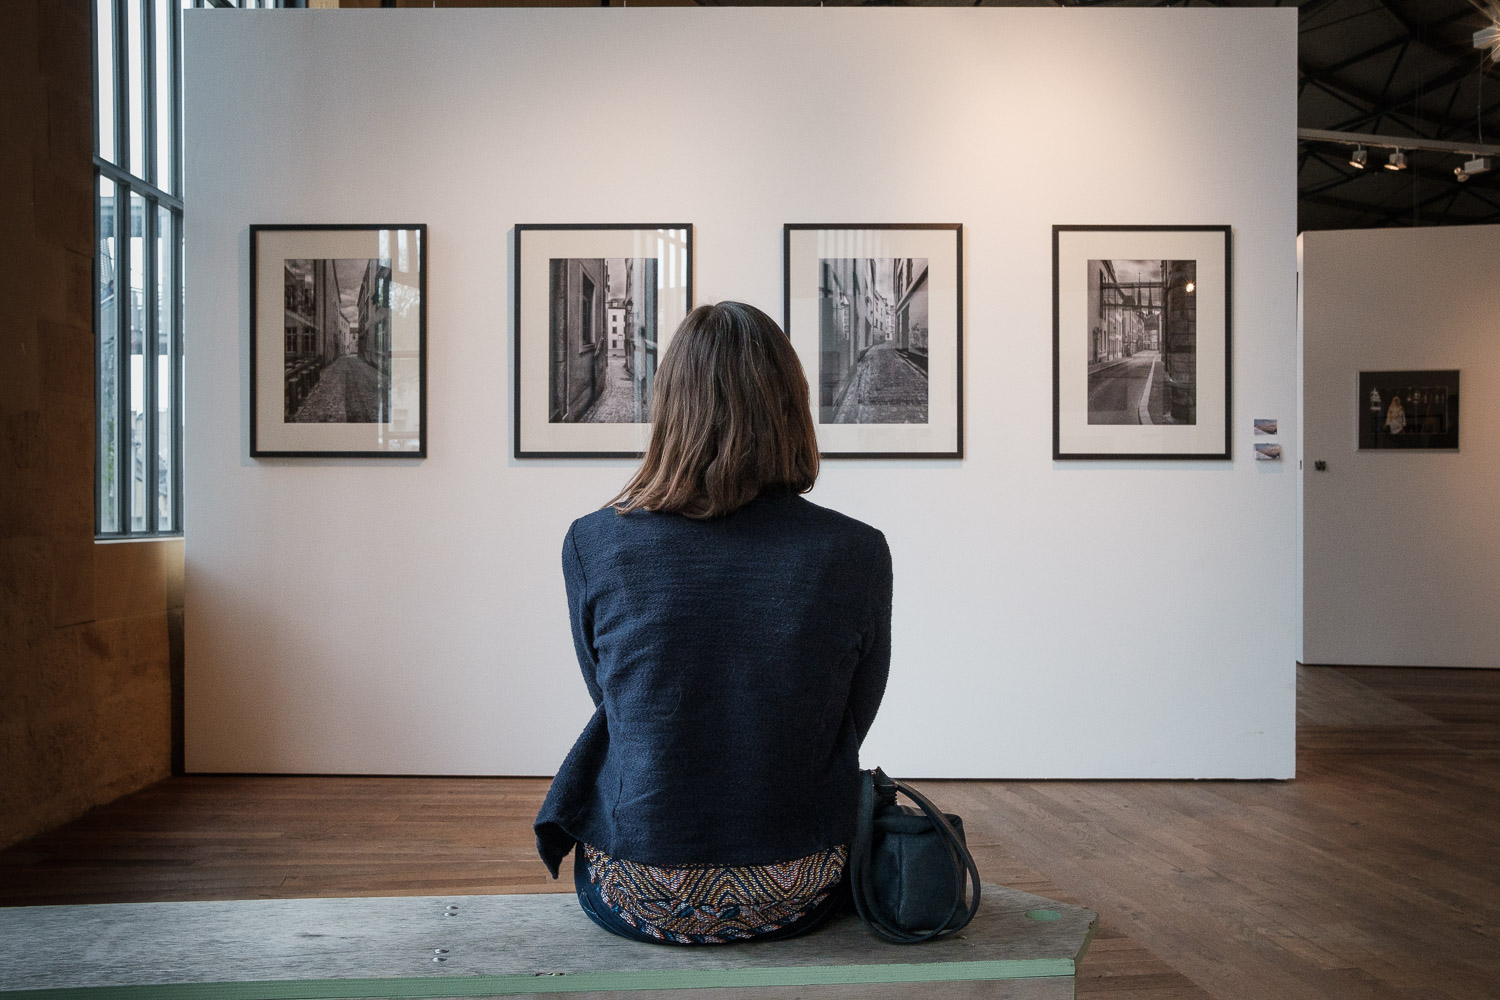 Luxembourg Street Photography Festival 2019 at Rotondes - LSPF 2019 - Photography by Christophe Van Biesen - Luxembourg Landscape and Travel Photographer